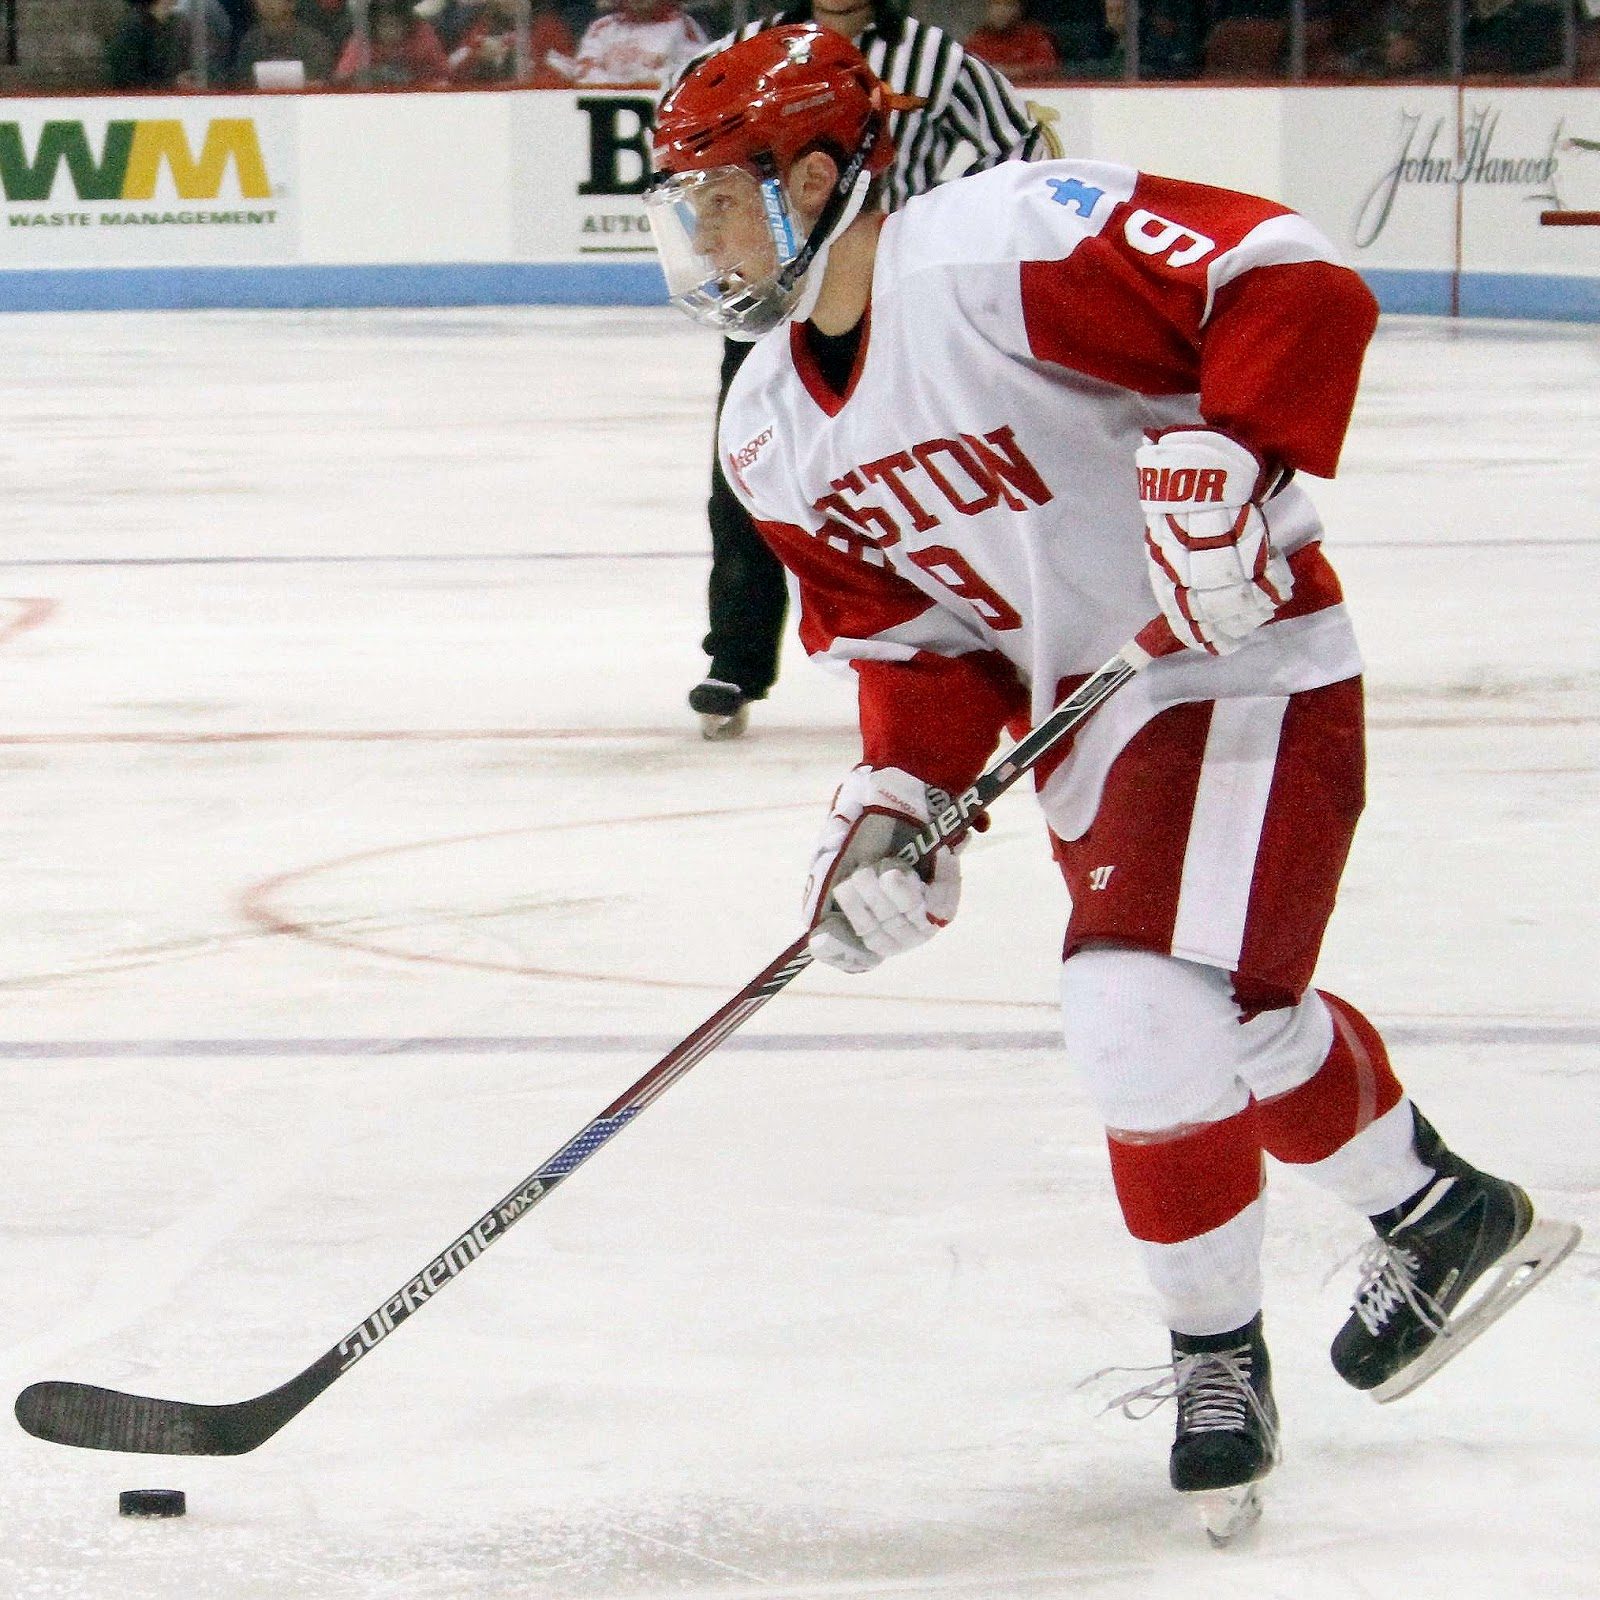 terrier hockey blog the terrier hockey fan blog third period burst makes bu 2000